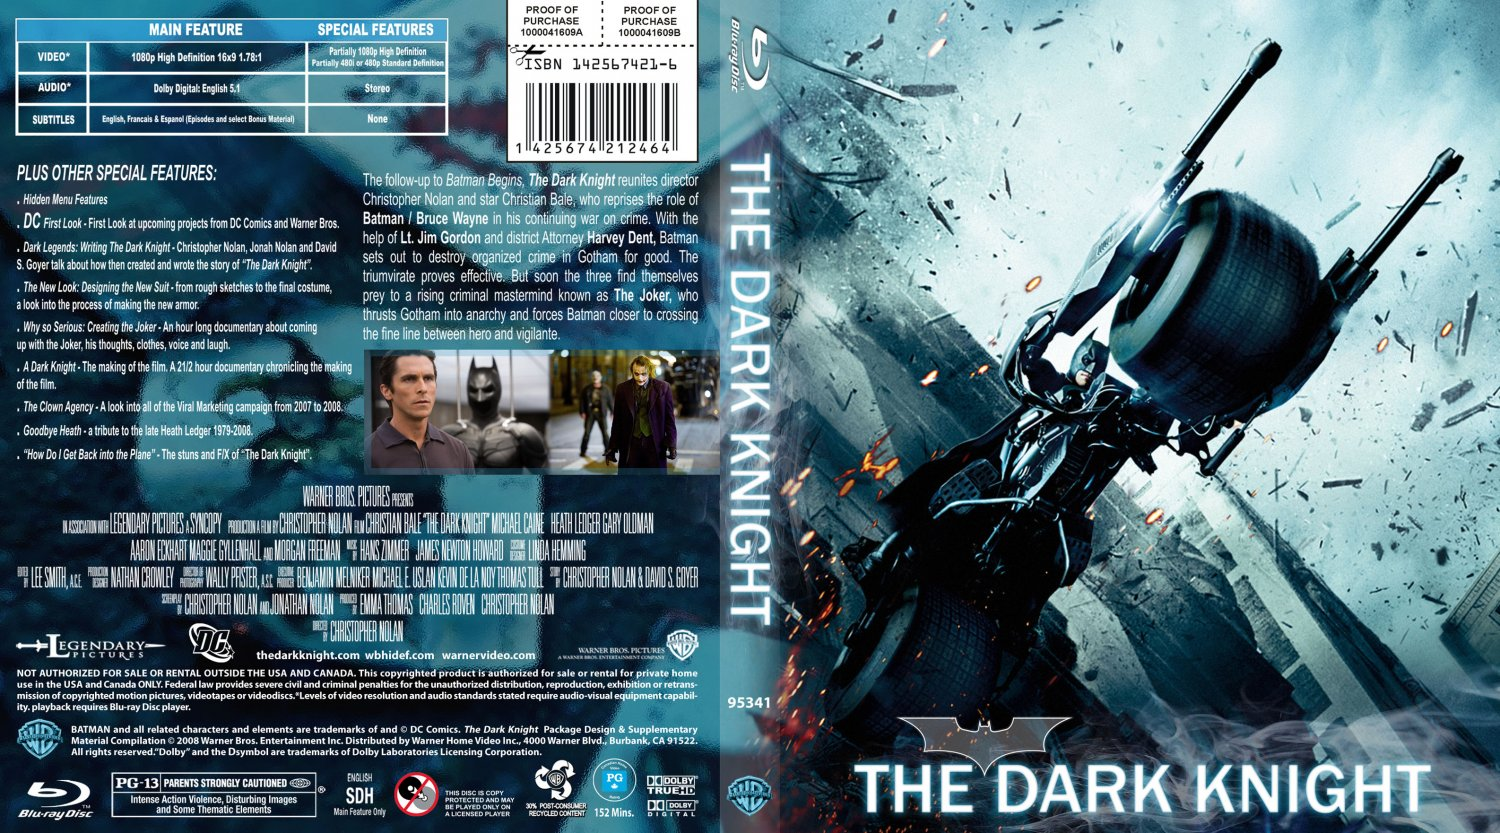 the dark knight blu ray cover 1 movie blu ray custom. Black Bedroom Furniture Sets. Home Design Ideas